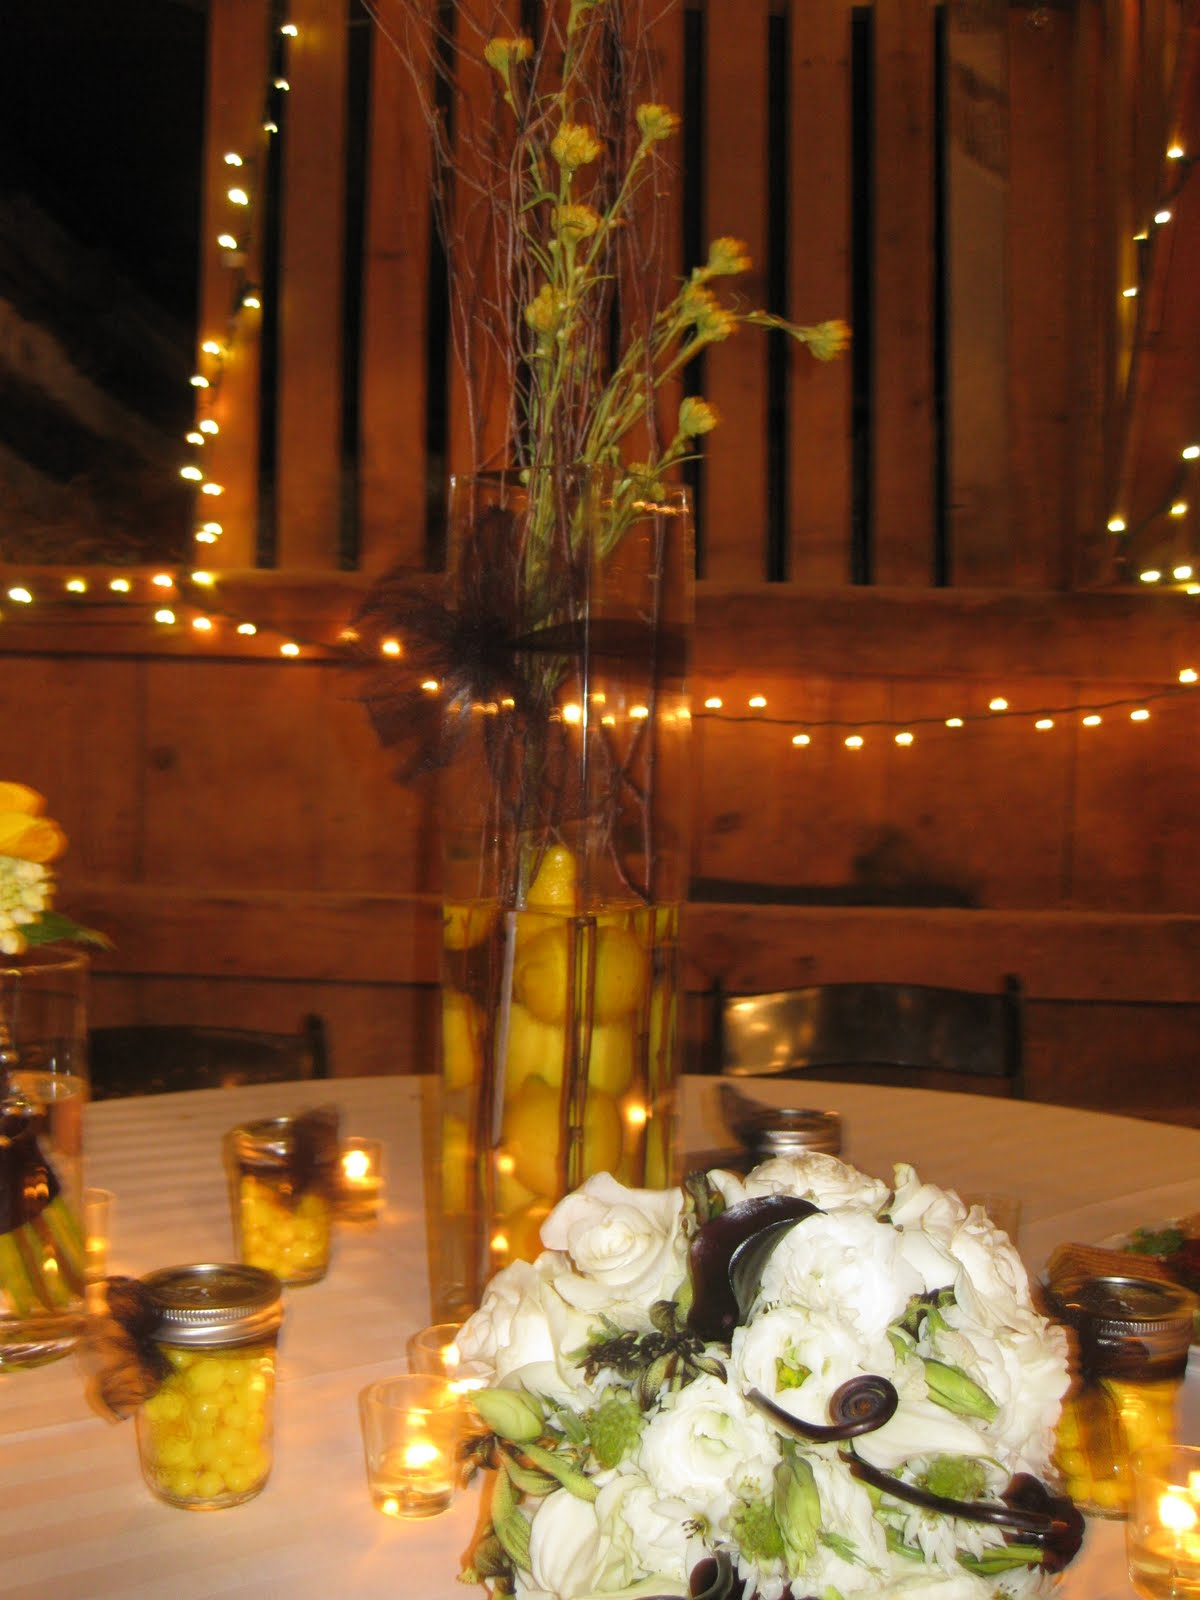 Homemade Wedding Centerpieces!